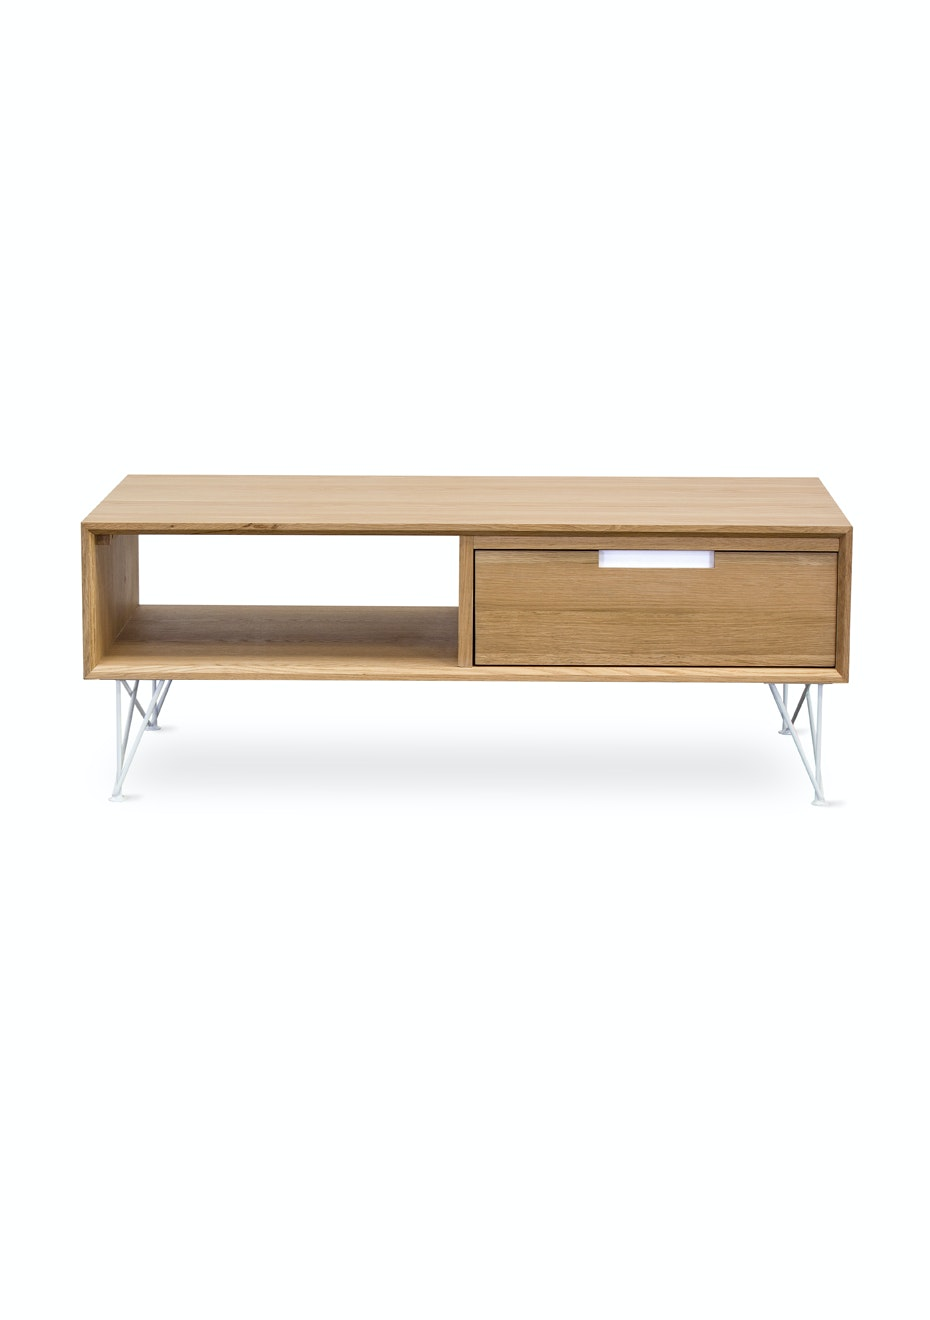 Furniture By Design - Pietement Coffee Table- White and Oak